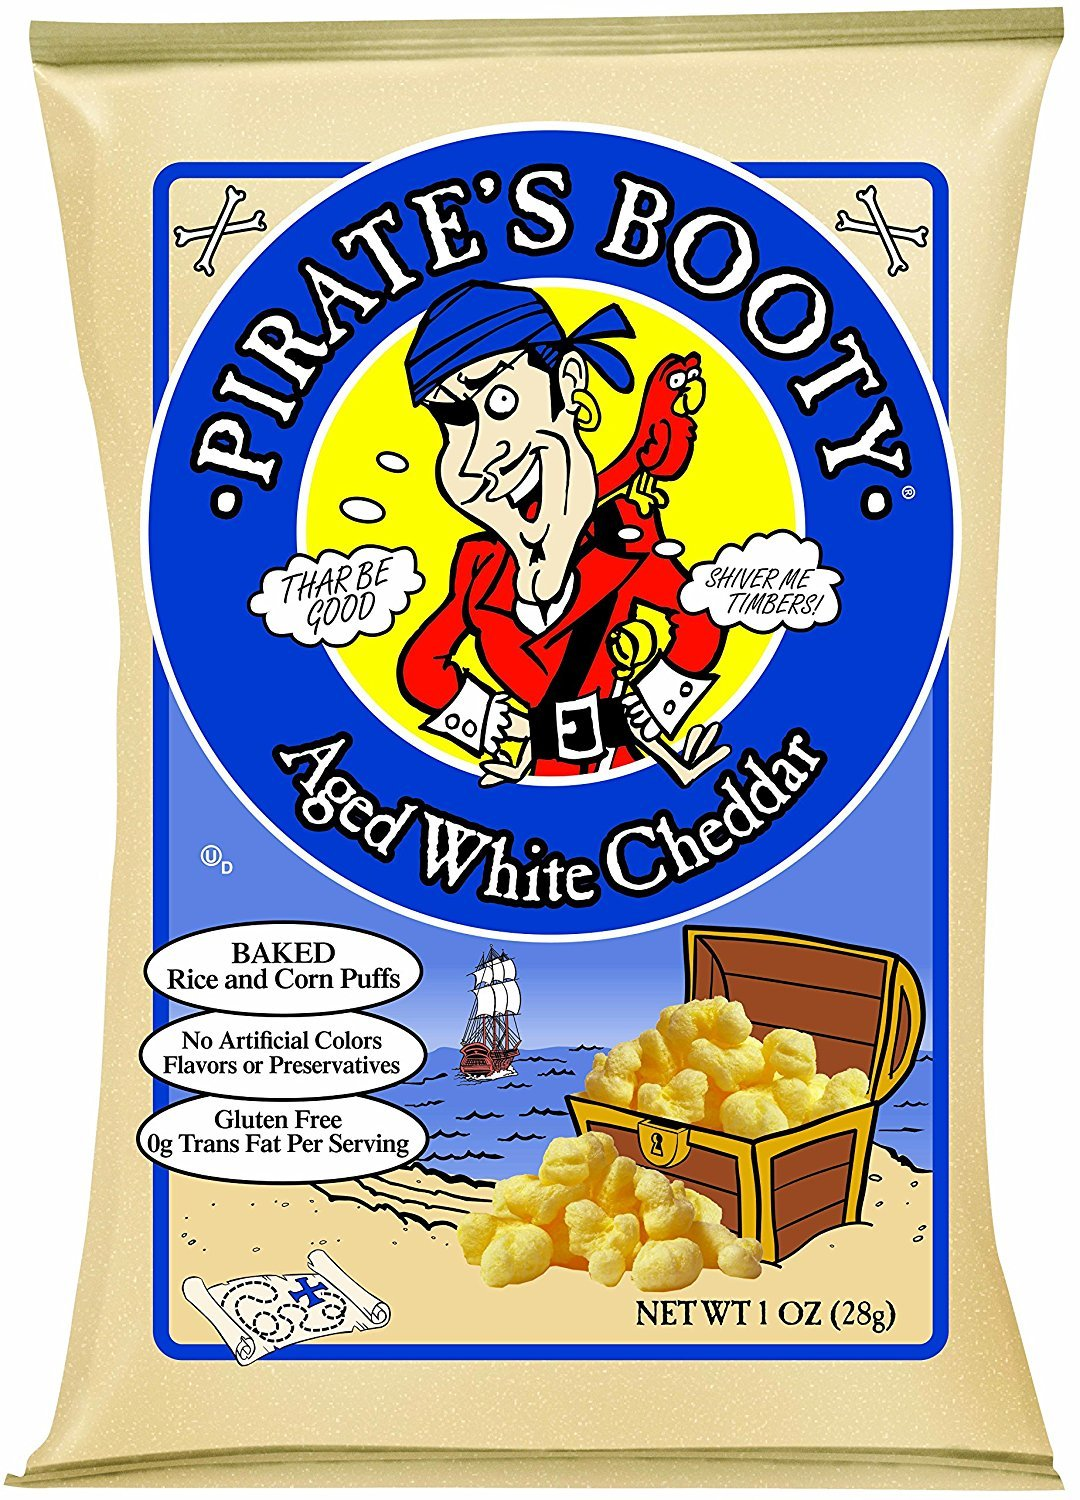 Pirate's Booty Aged White Cheddar, 1 Ounce 48 Count